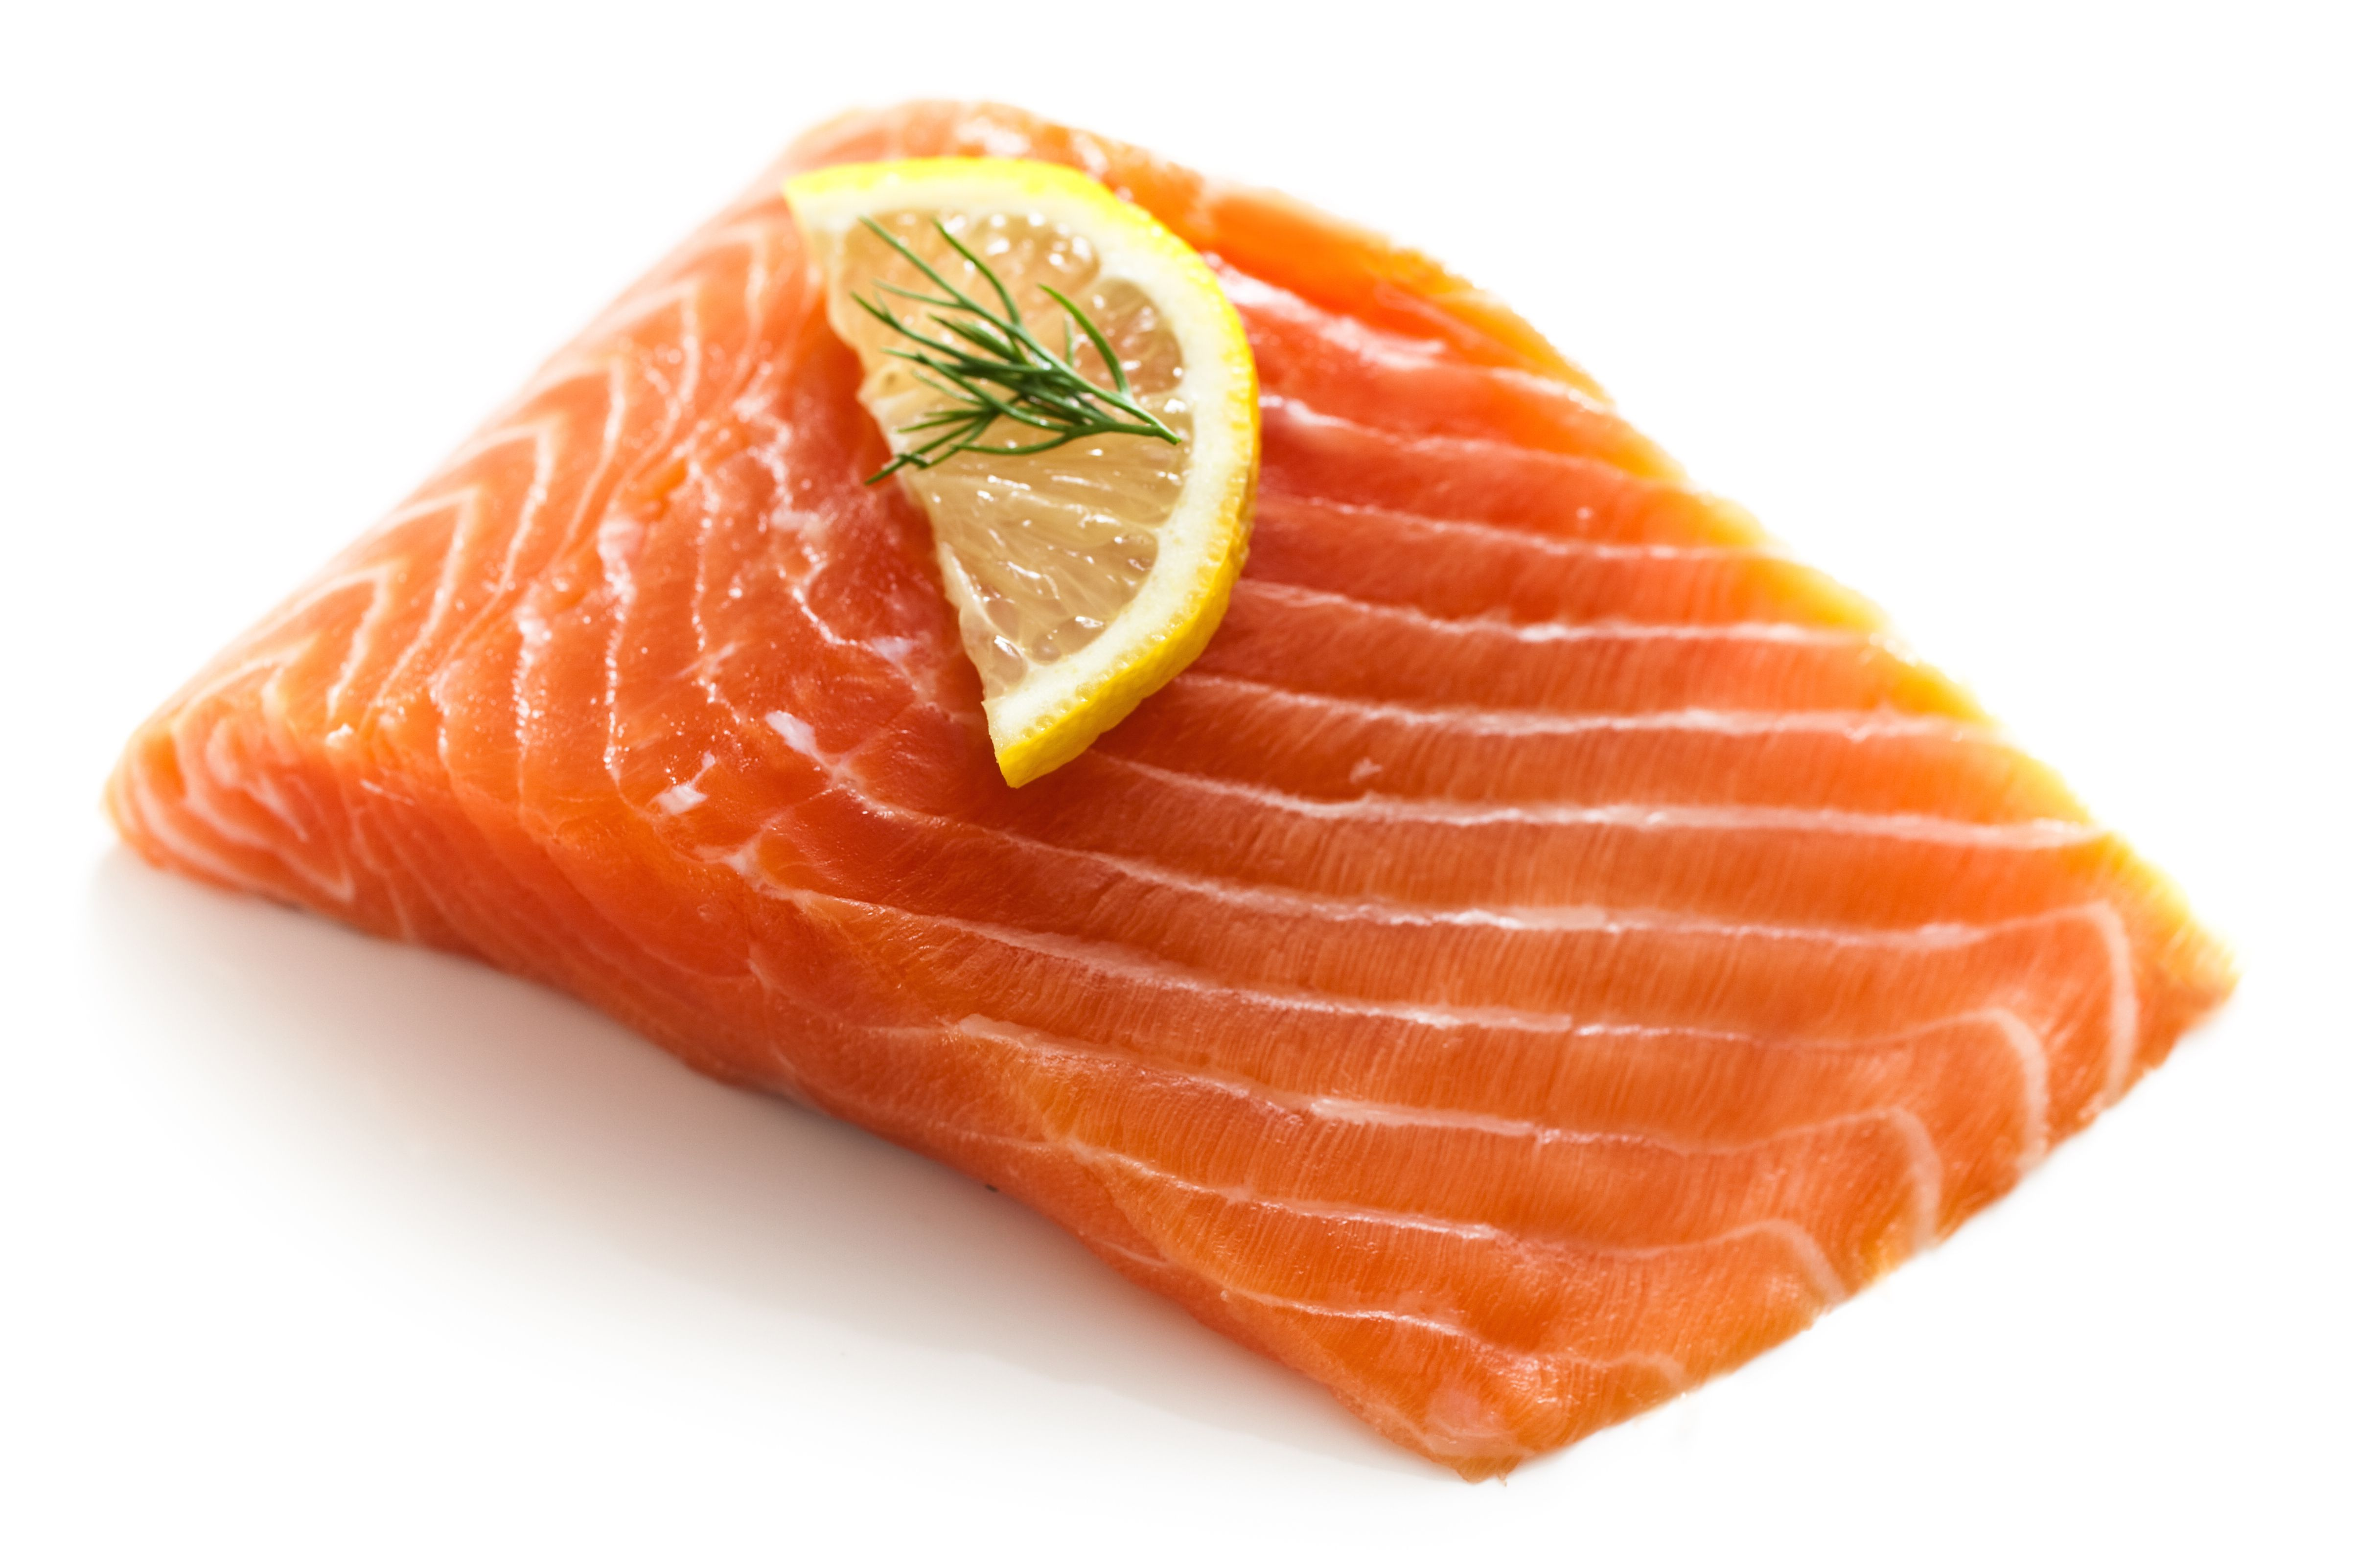 Filet of salmon topped with a lemon slice